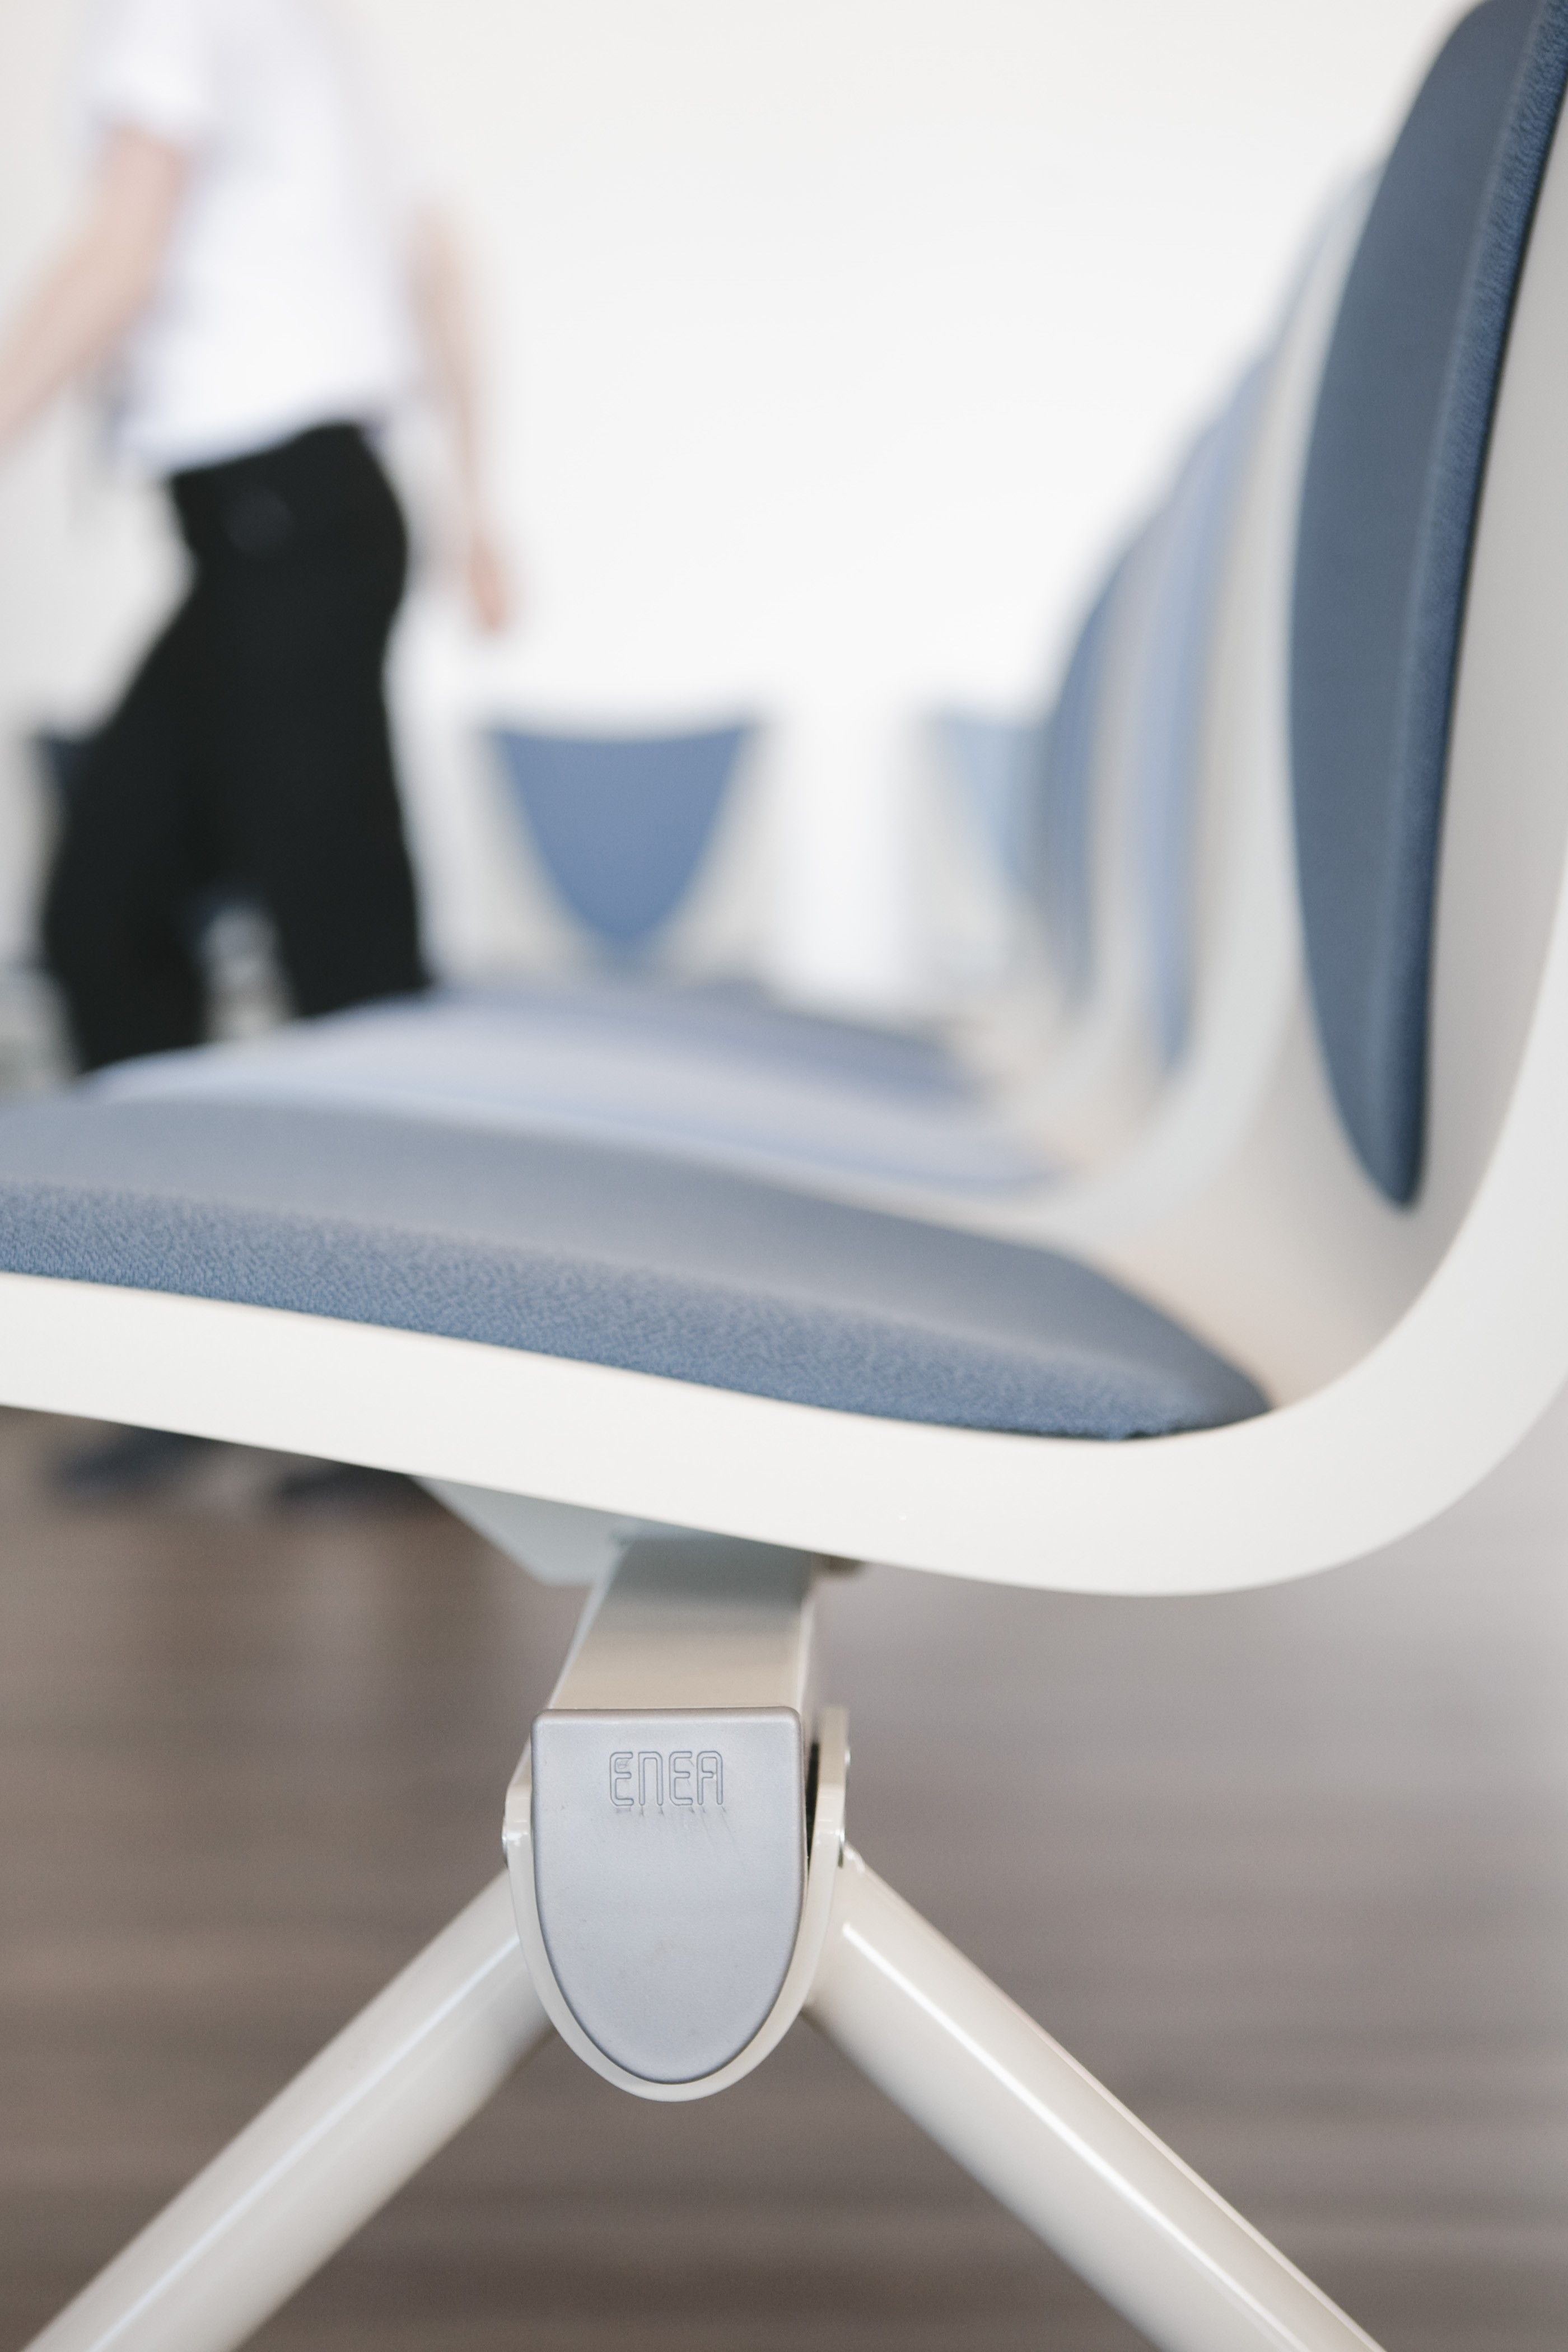 Eneau0027s #Talky Bench In The Waiting Area Of The Lands End Airport (Cornwall,  UK).